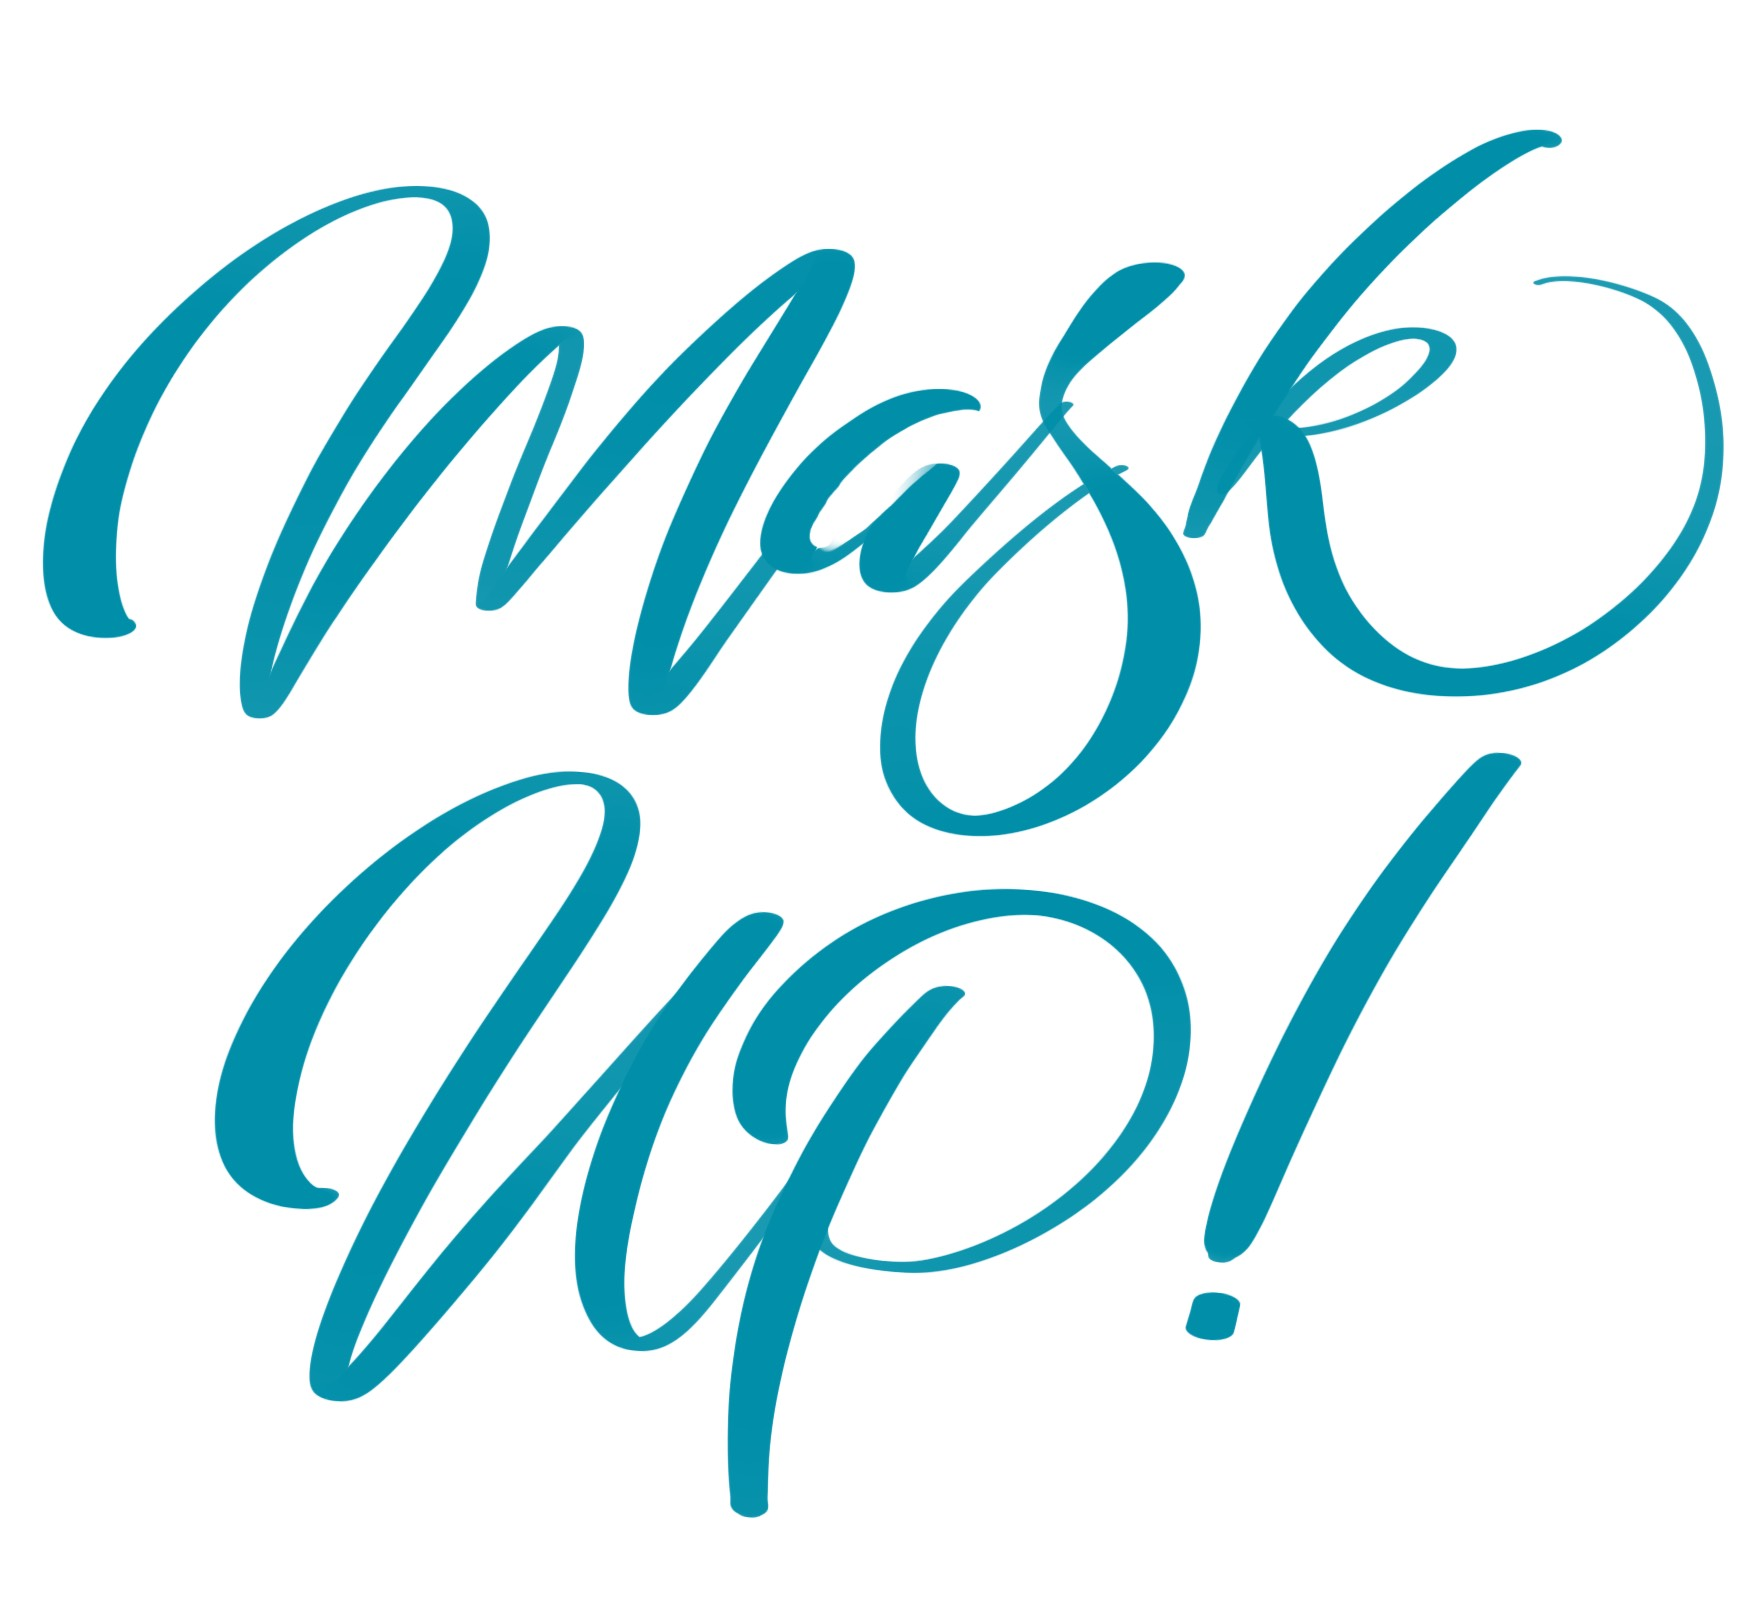 Mask Up text overlay